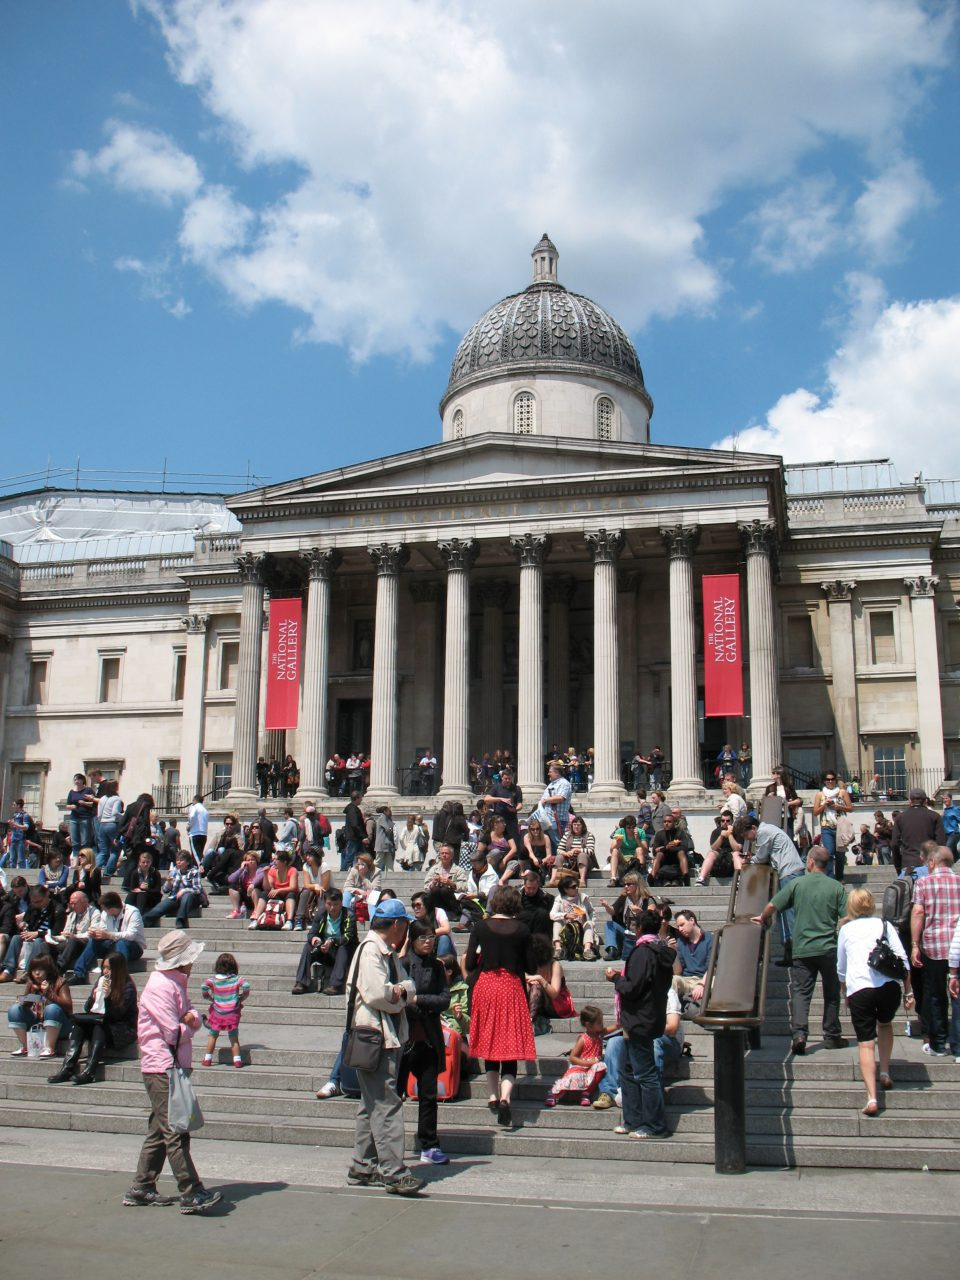 Londen National Gallery